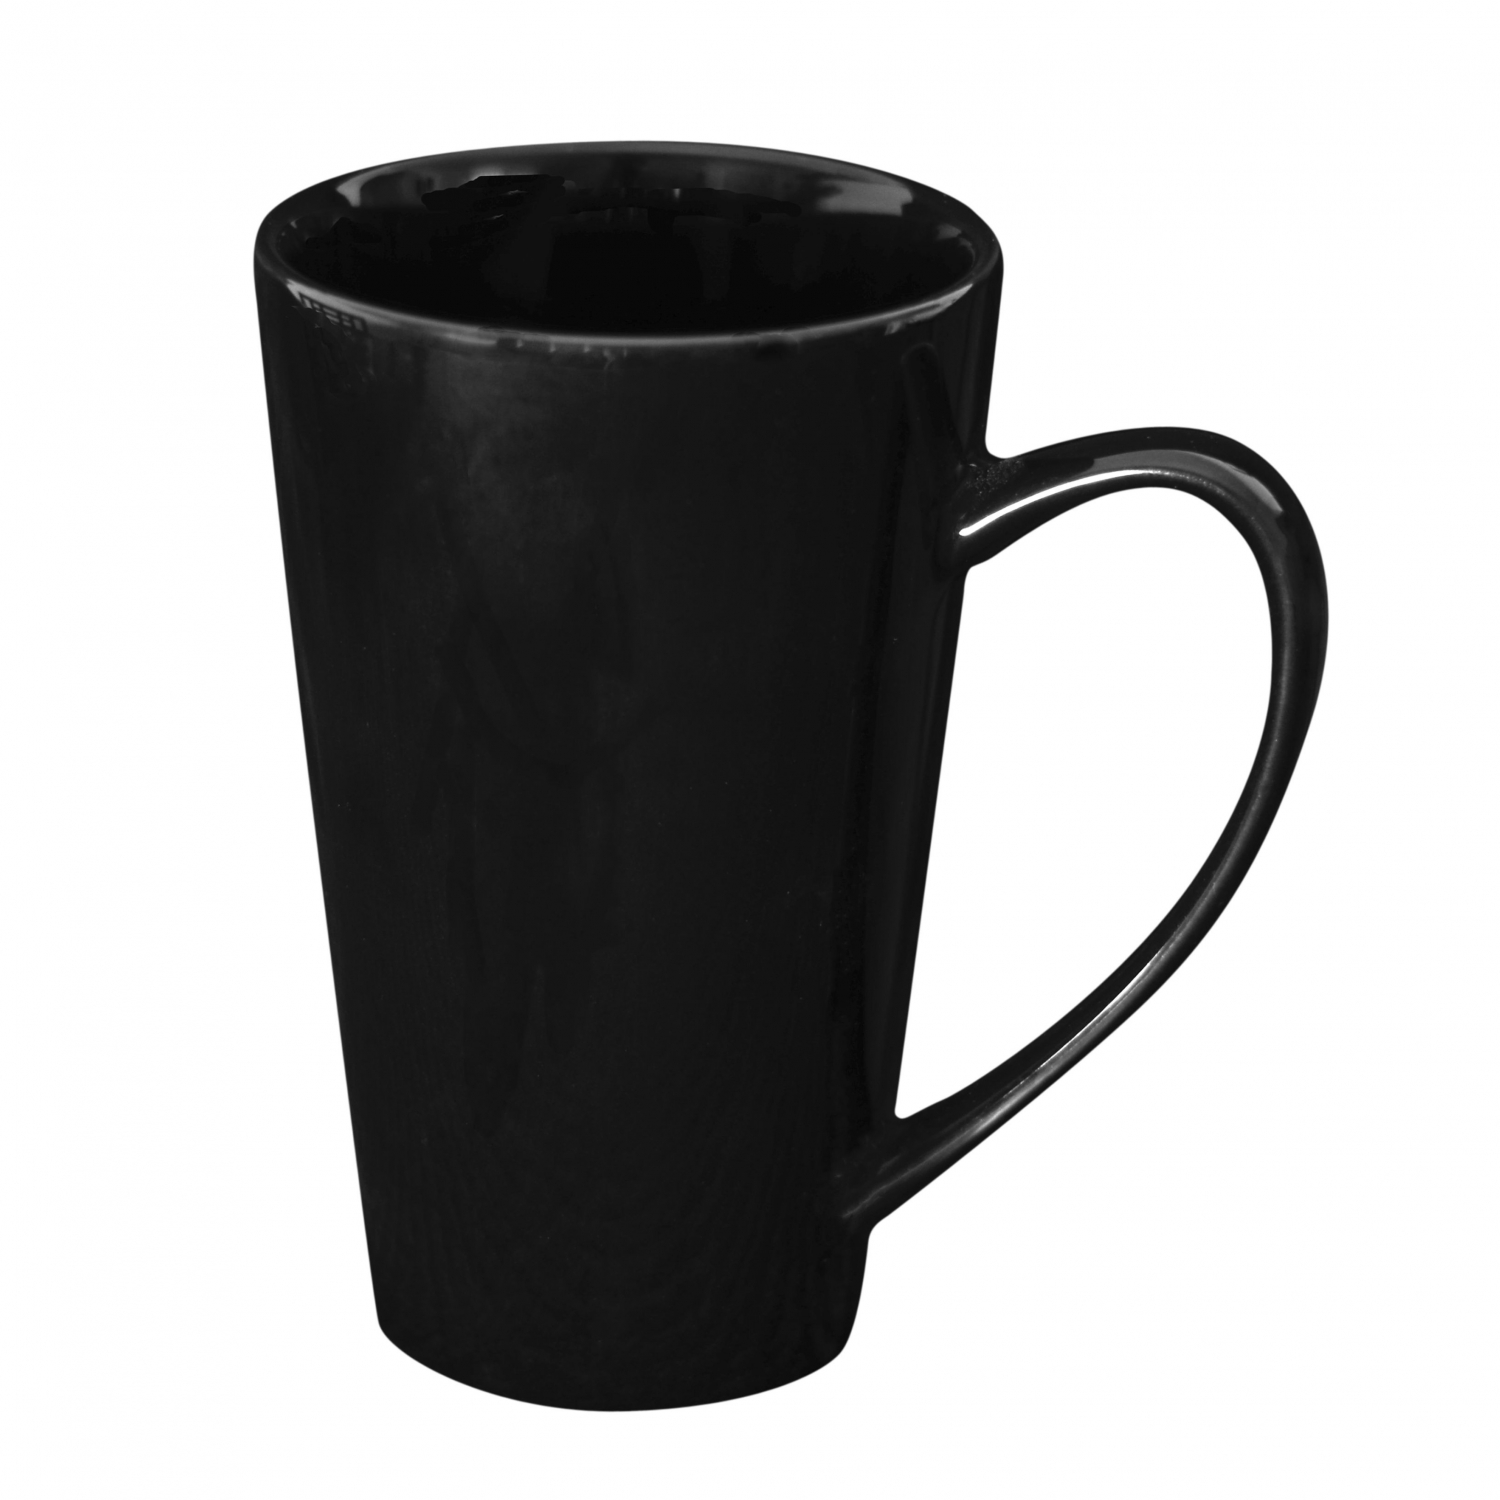 10 Strawberry Street XLMUG-BLK 24 oz. Black Oversized Latte Mug - 12 pcs